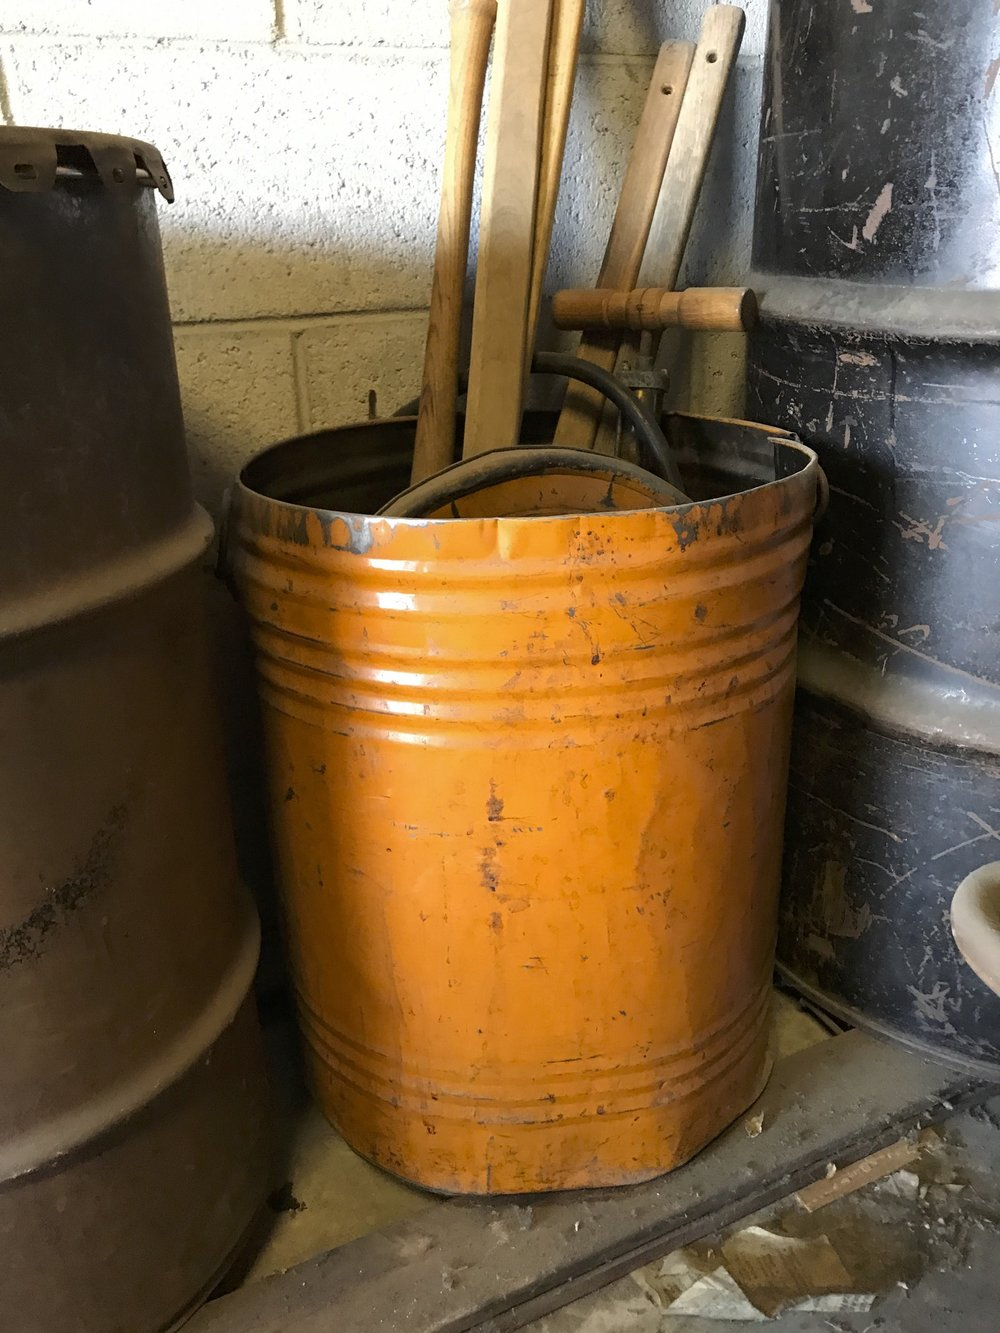 (10) Popcorn paddles/orange tin used to have popcorn in it